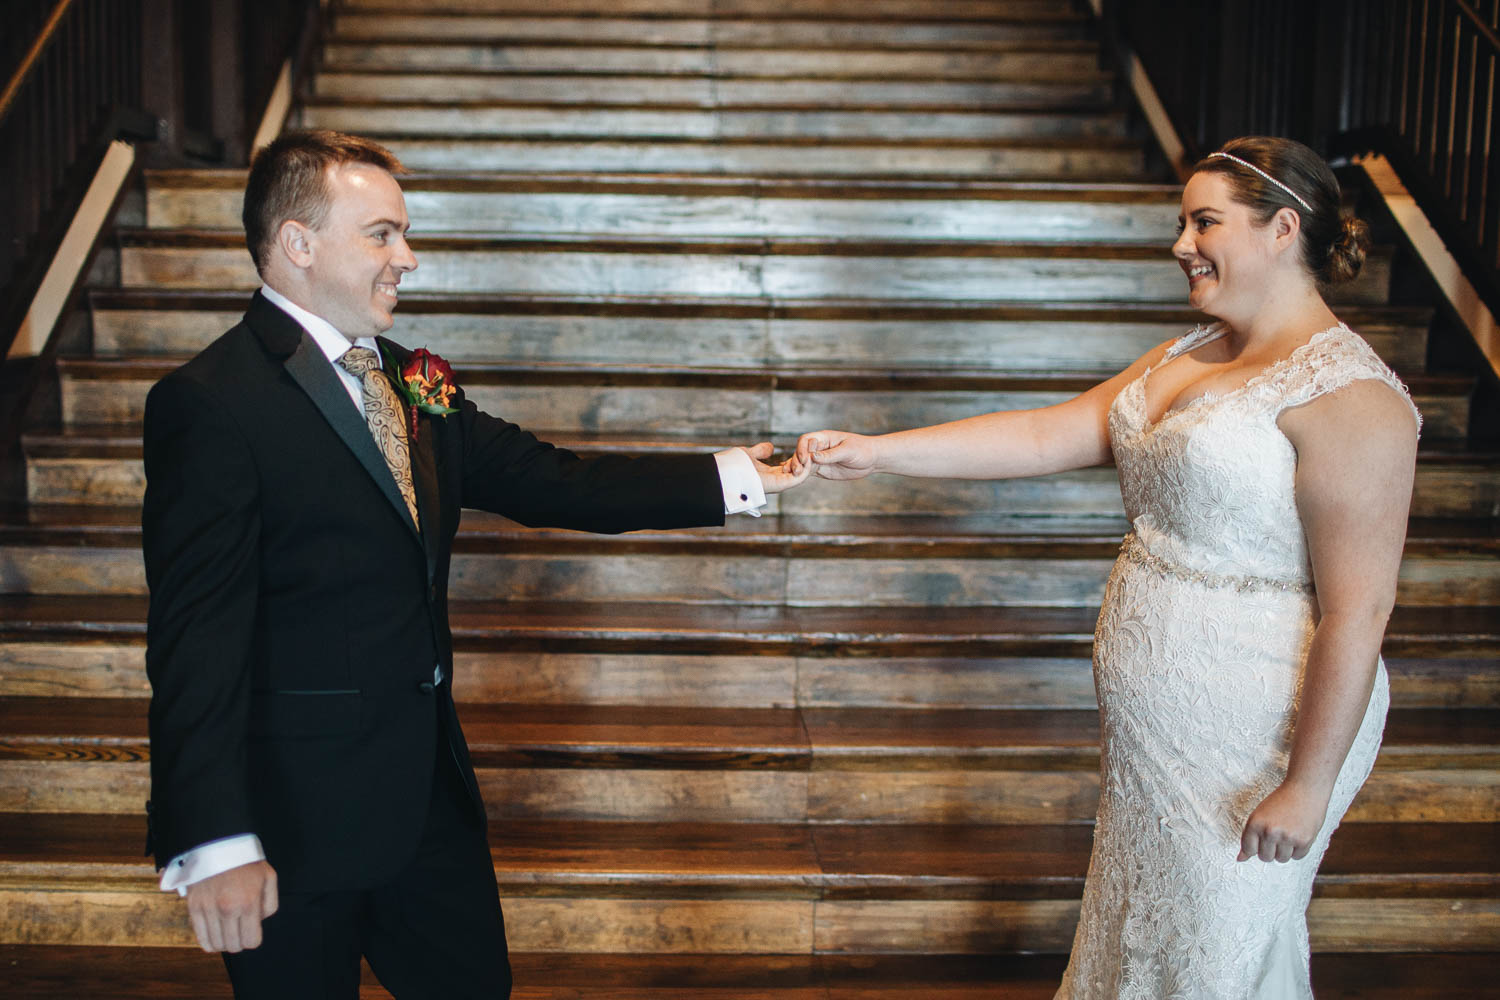 Nashville Tennessee wedding photography by David A. Smith of DSmithImages Wedding Photography, Portraits, and Events